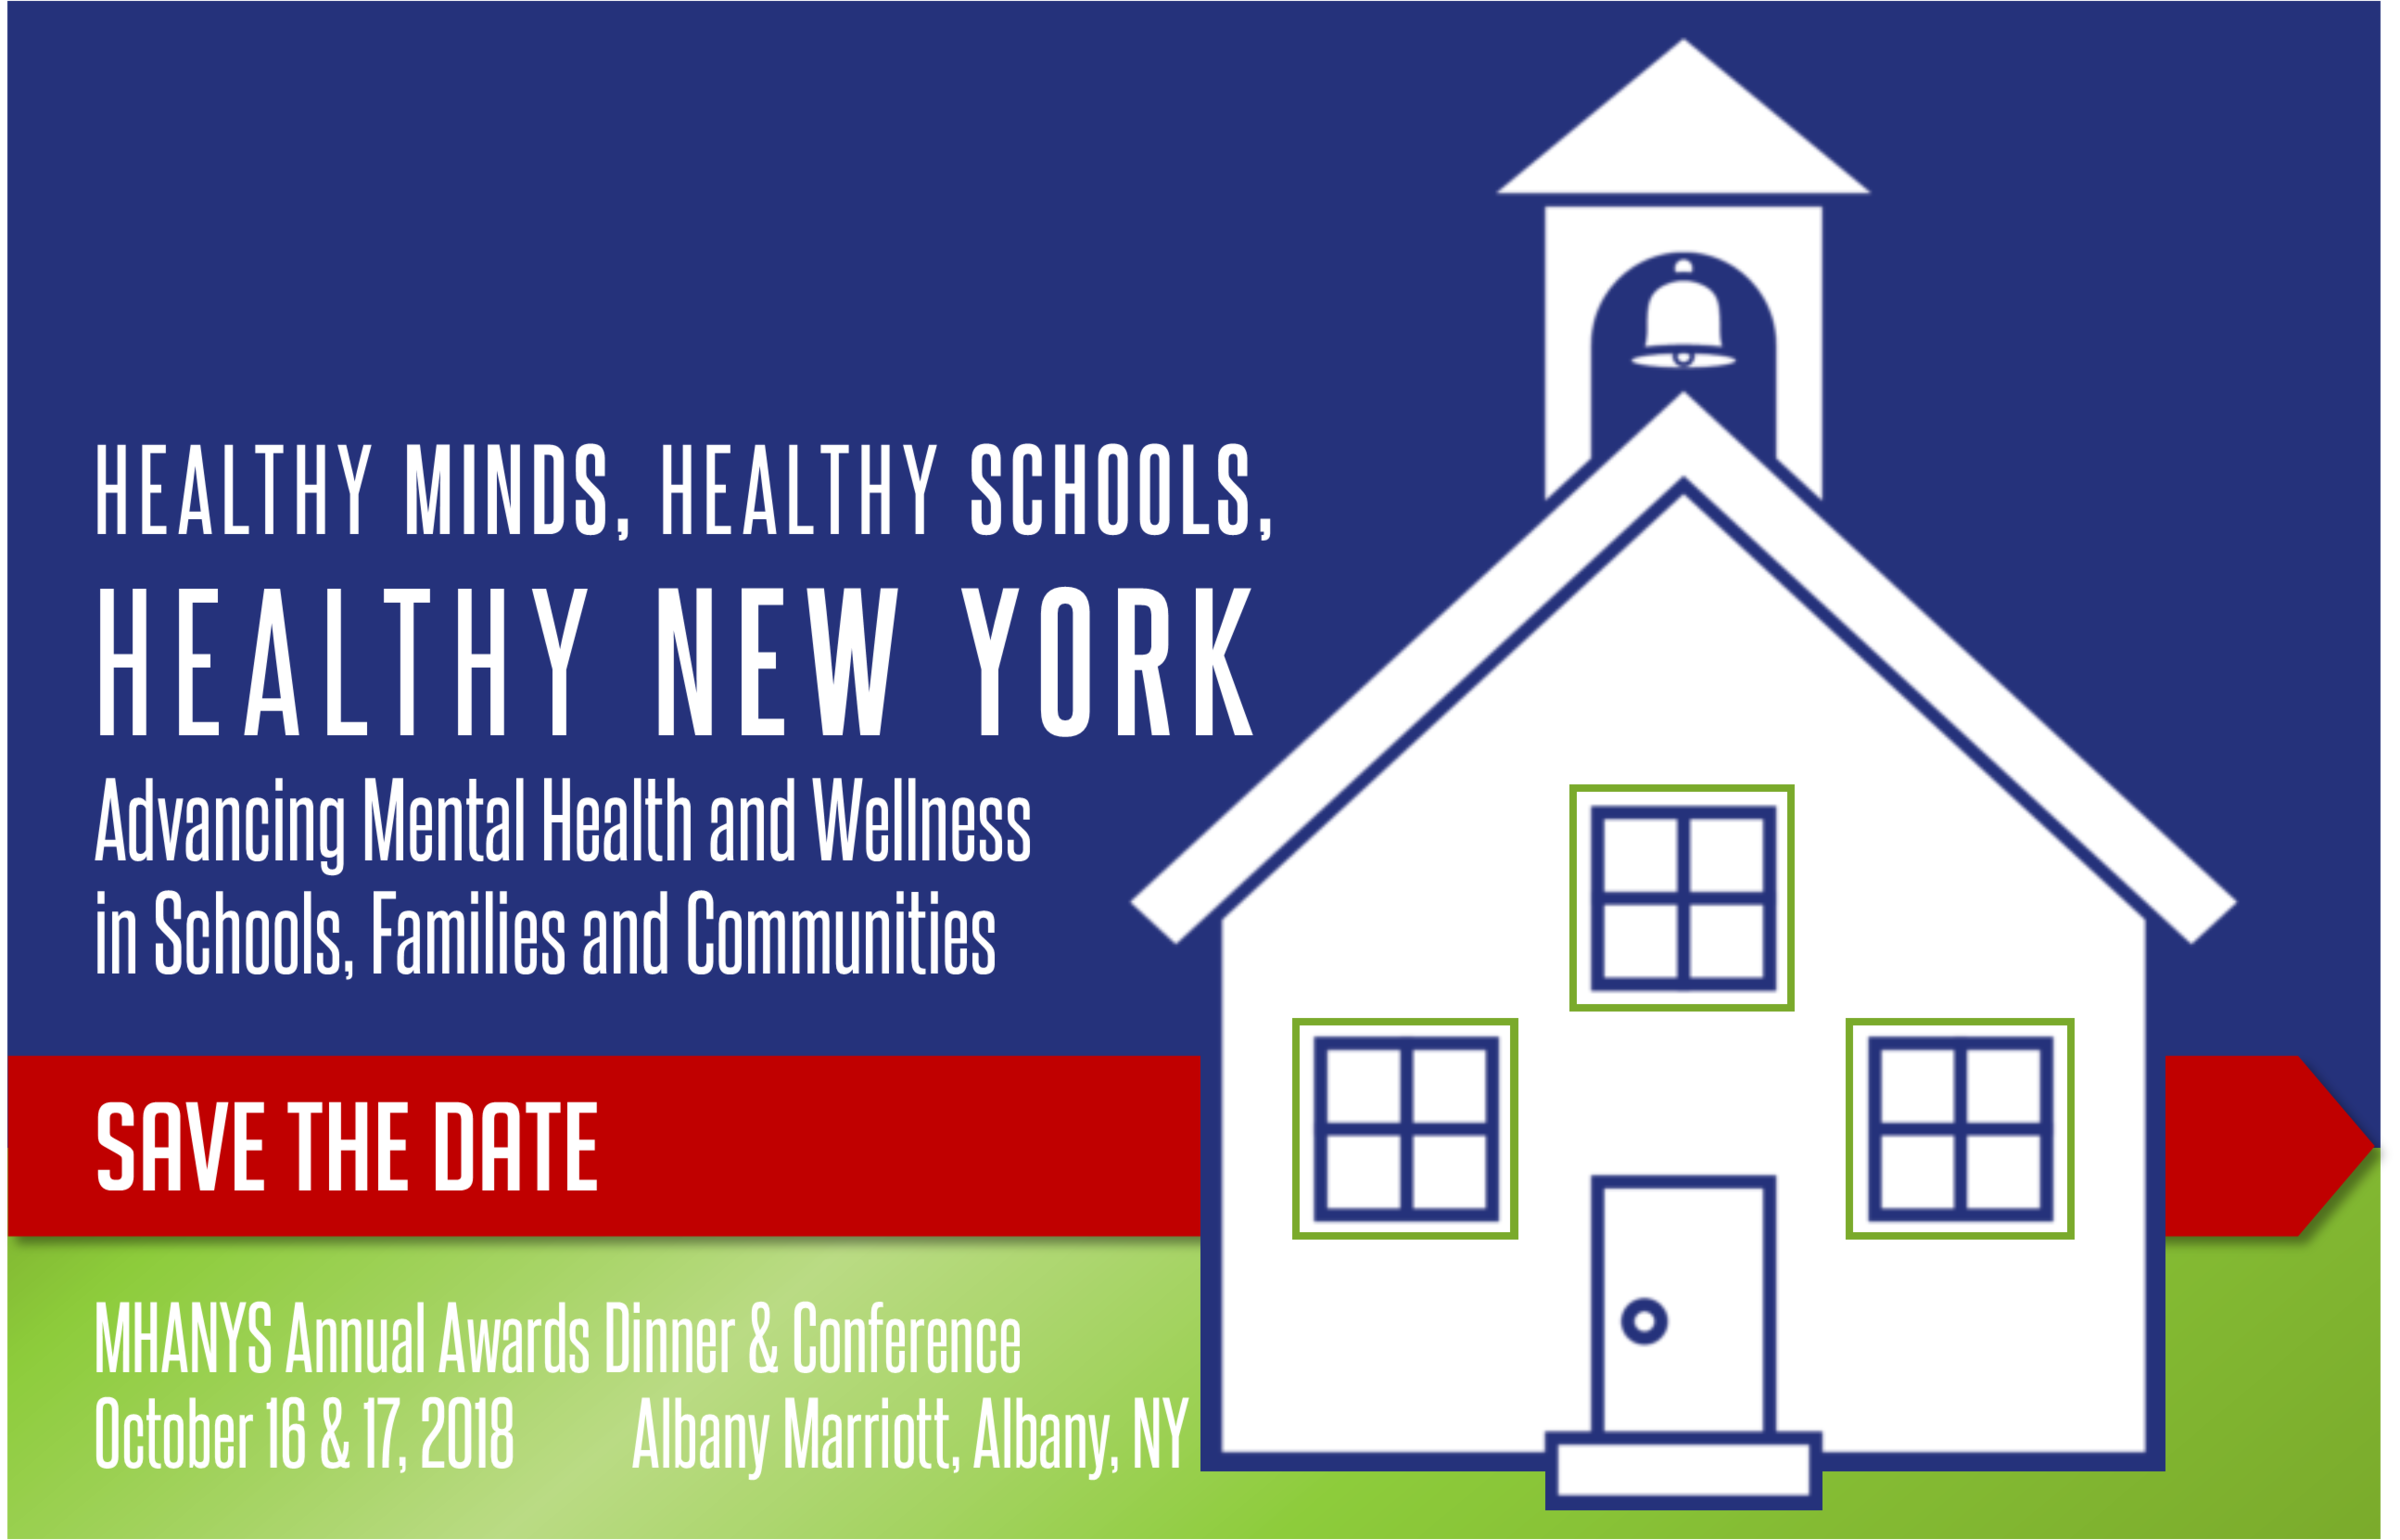 Mandated Mental Health Education In Nys Public Schools Could Help